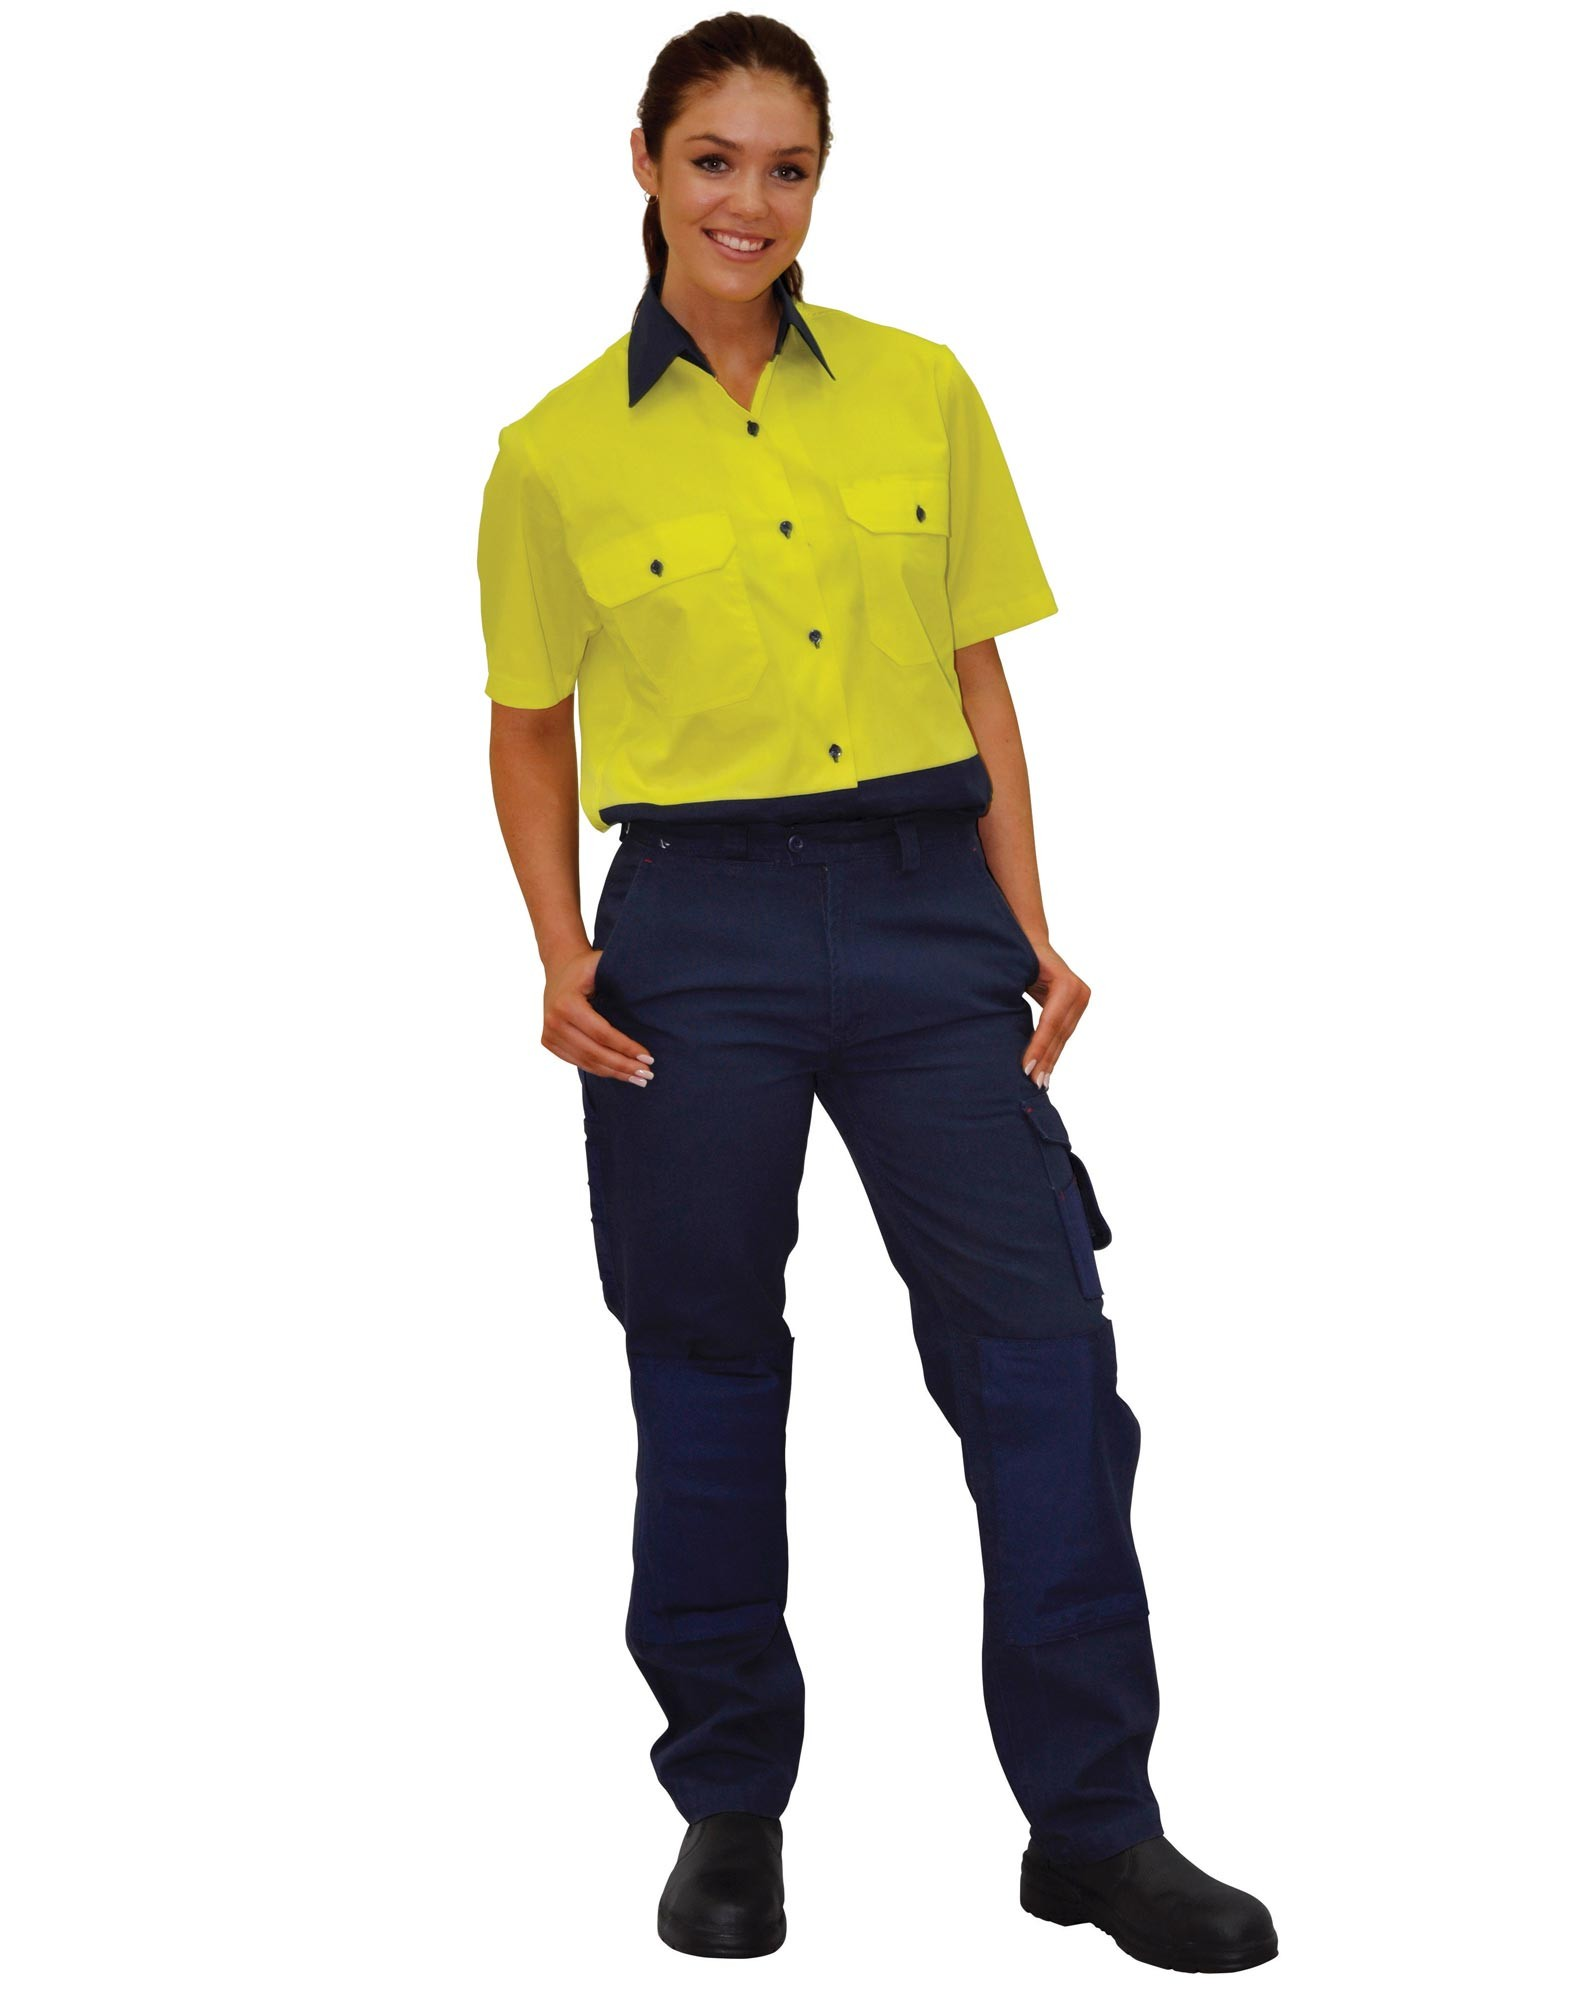 LADIES' DURABLE WORK PANTS